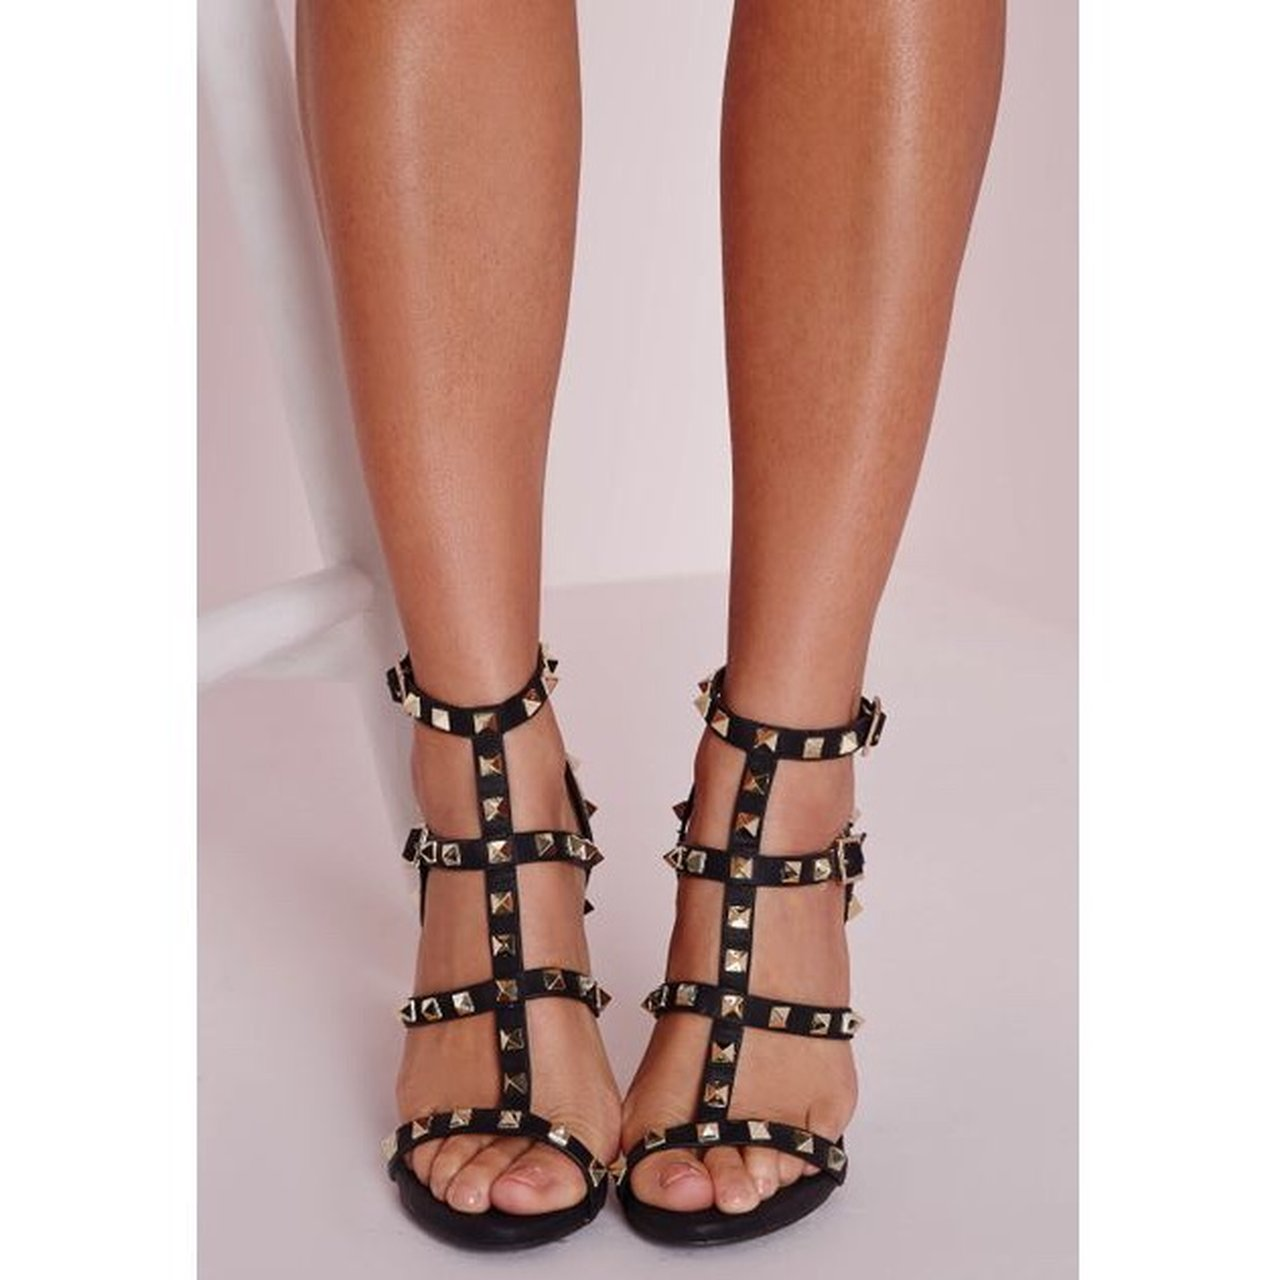 b109e914df1 DEPOP. Missguided black studded gladiator style sandal heelsSize 5Only worn  once, perfect conditionBought ...